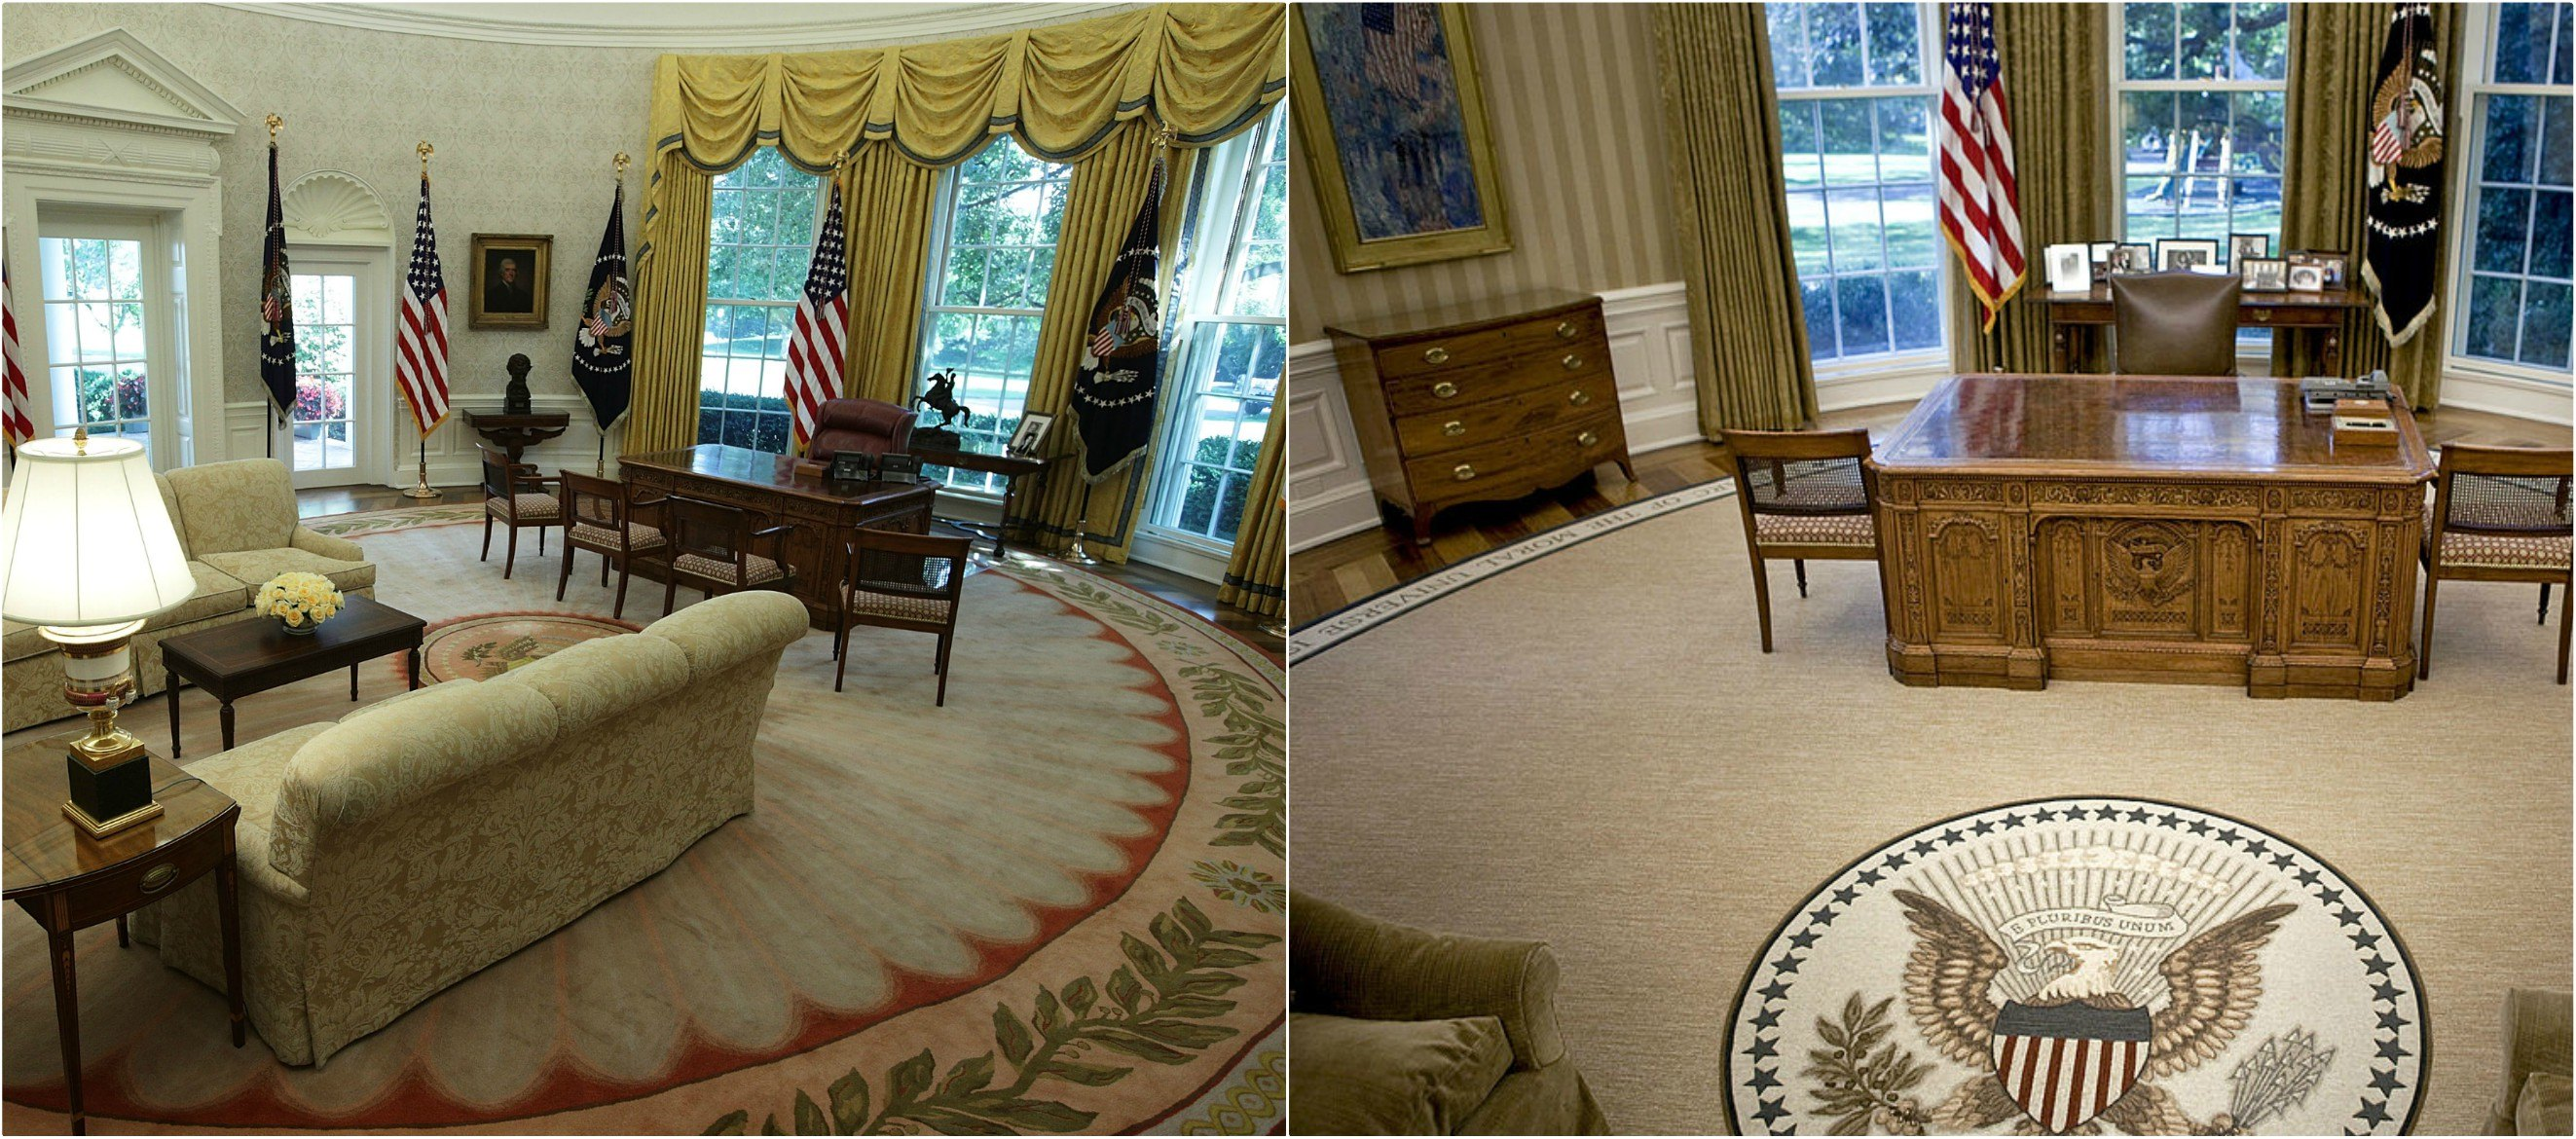 Oval Office Rug This Is The First Thing Donald Trump Changed In The Oval